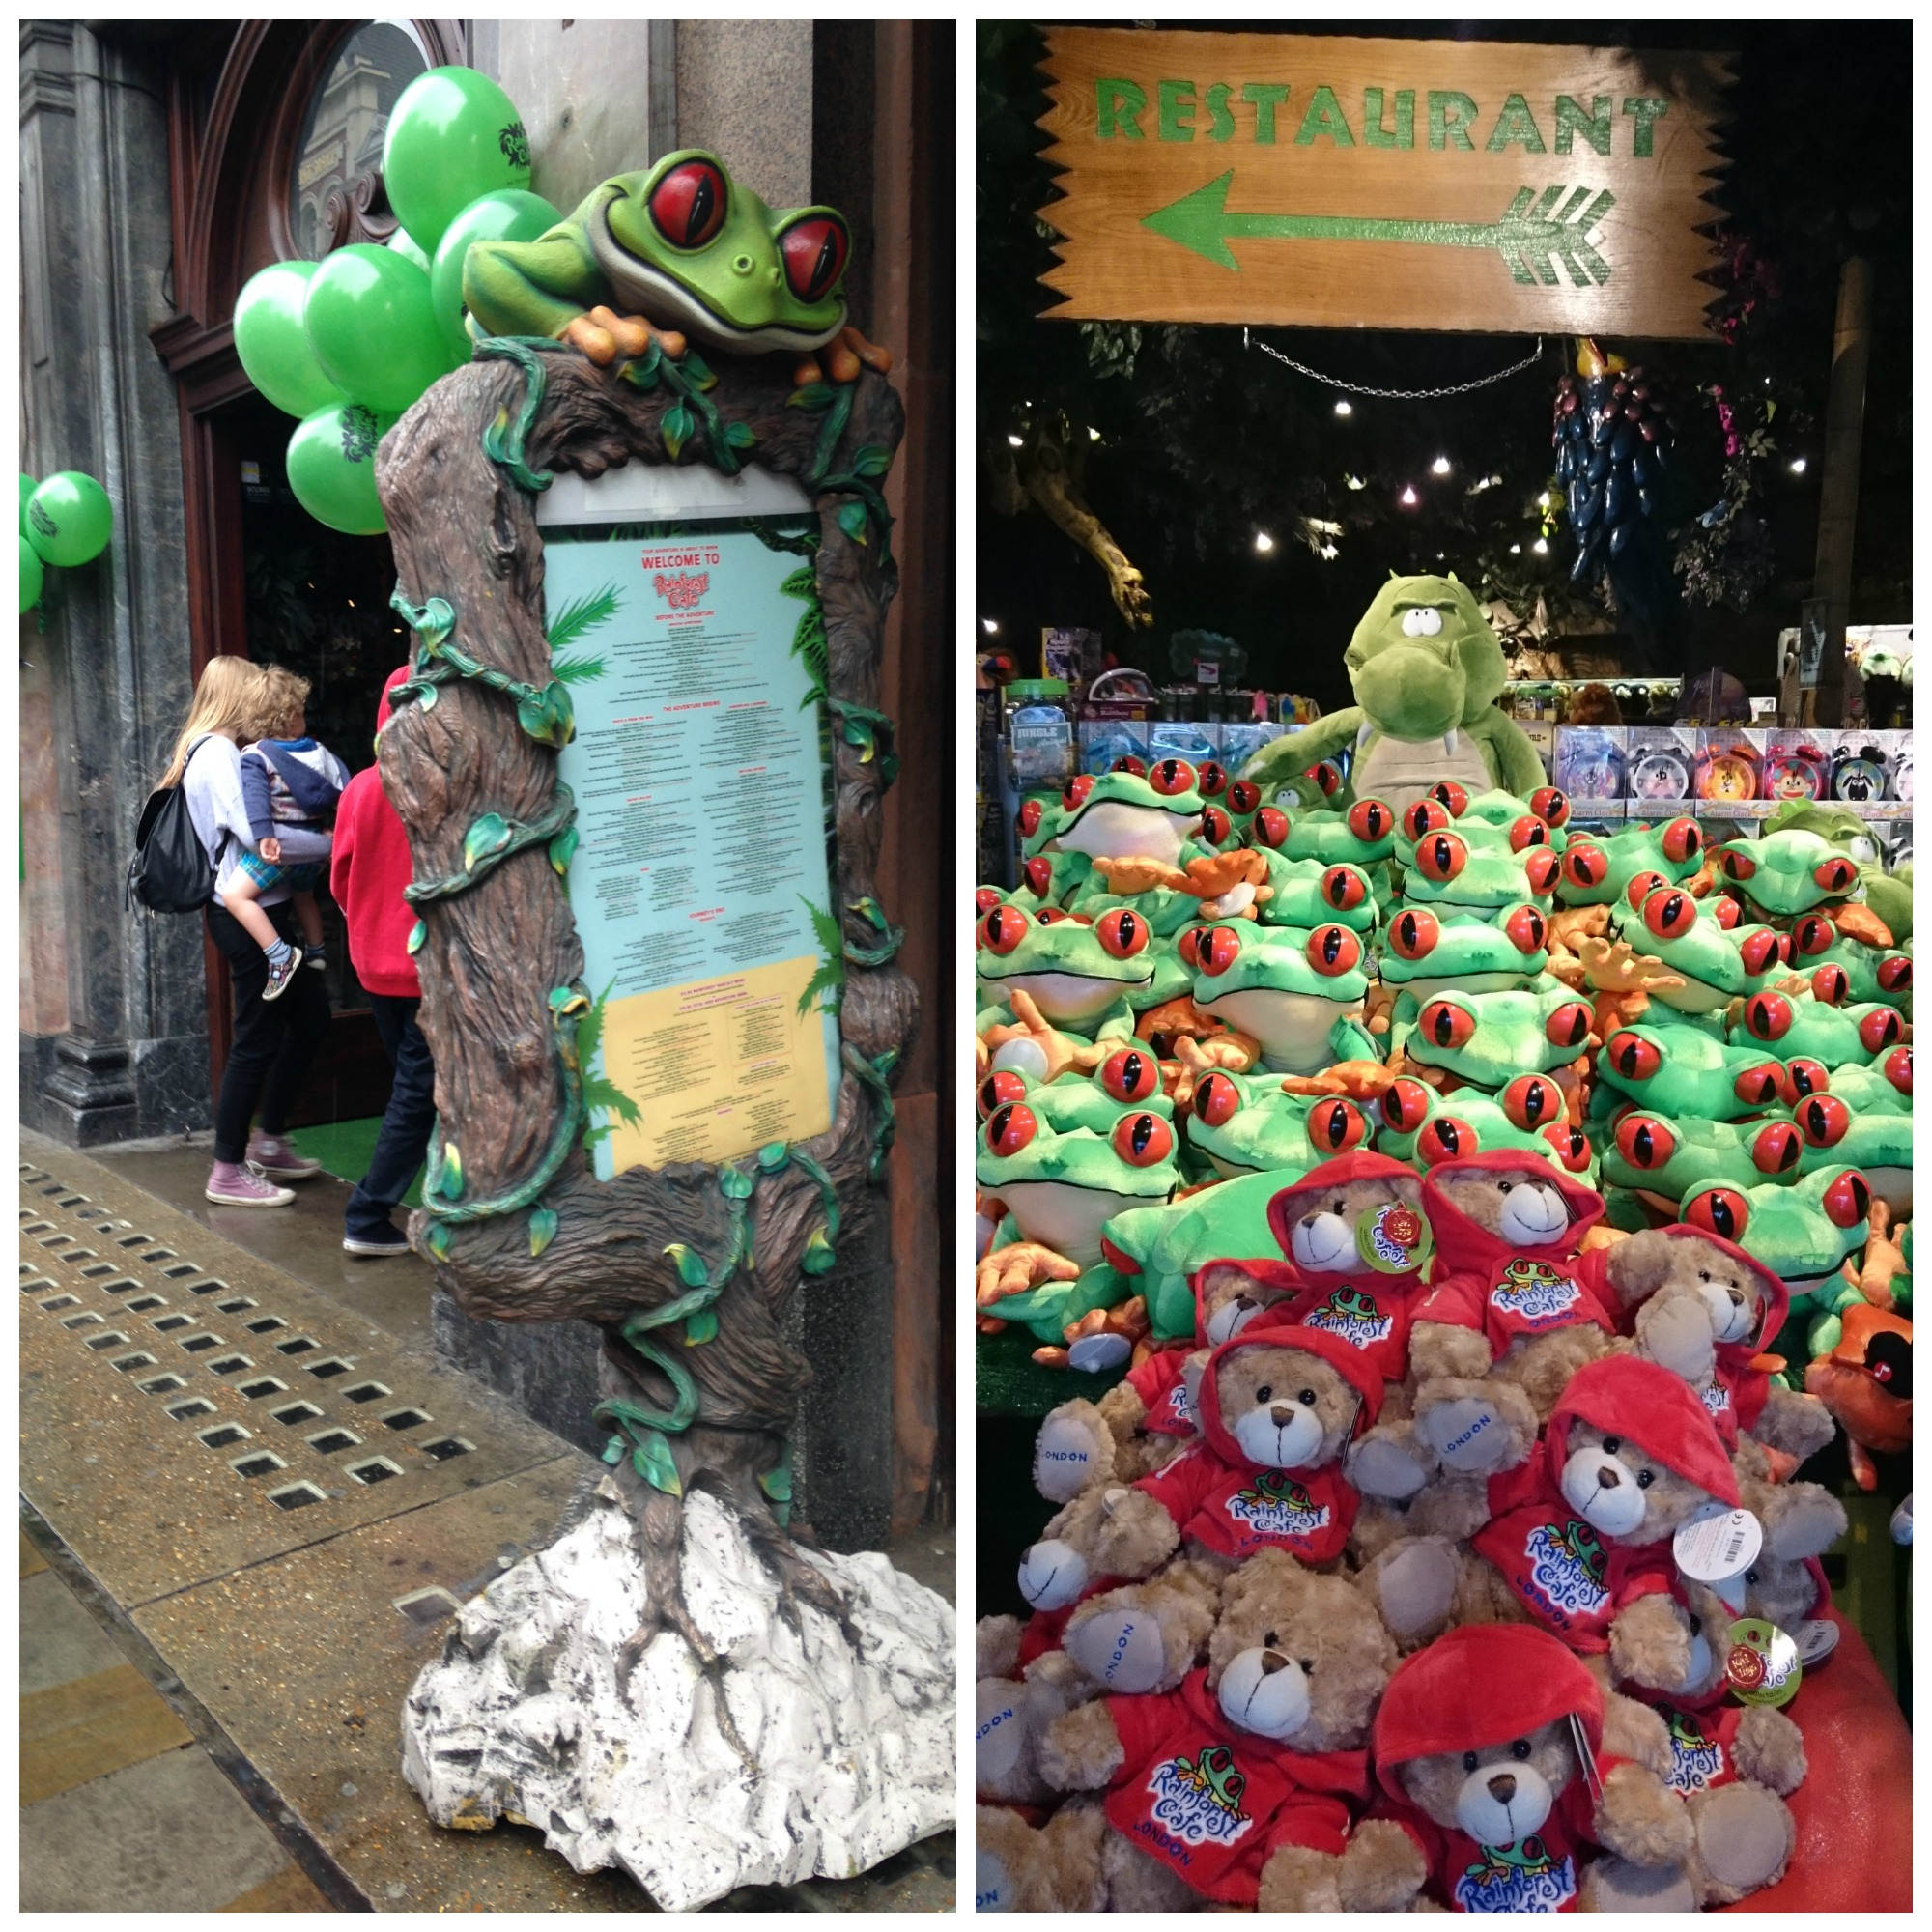 rainforest cafe. I went into the big shop with Mummy, bro and sis. WOW!  Just WOW! All I could see were toy animals everywhere. We walked through  them, ...